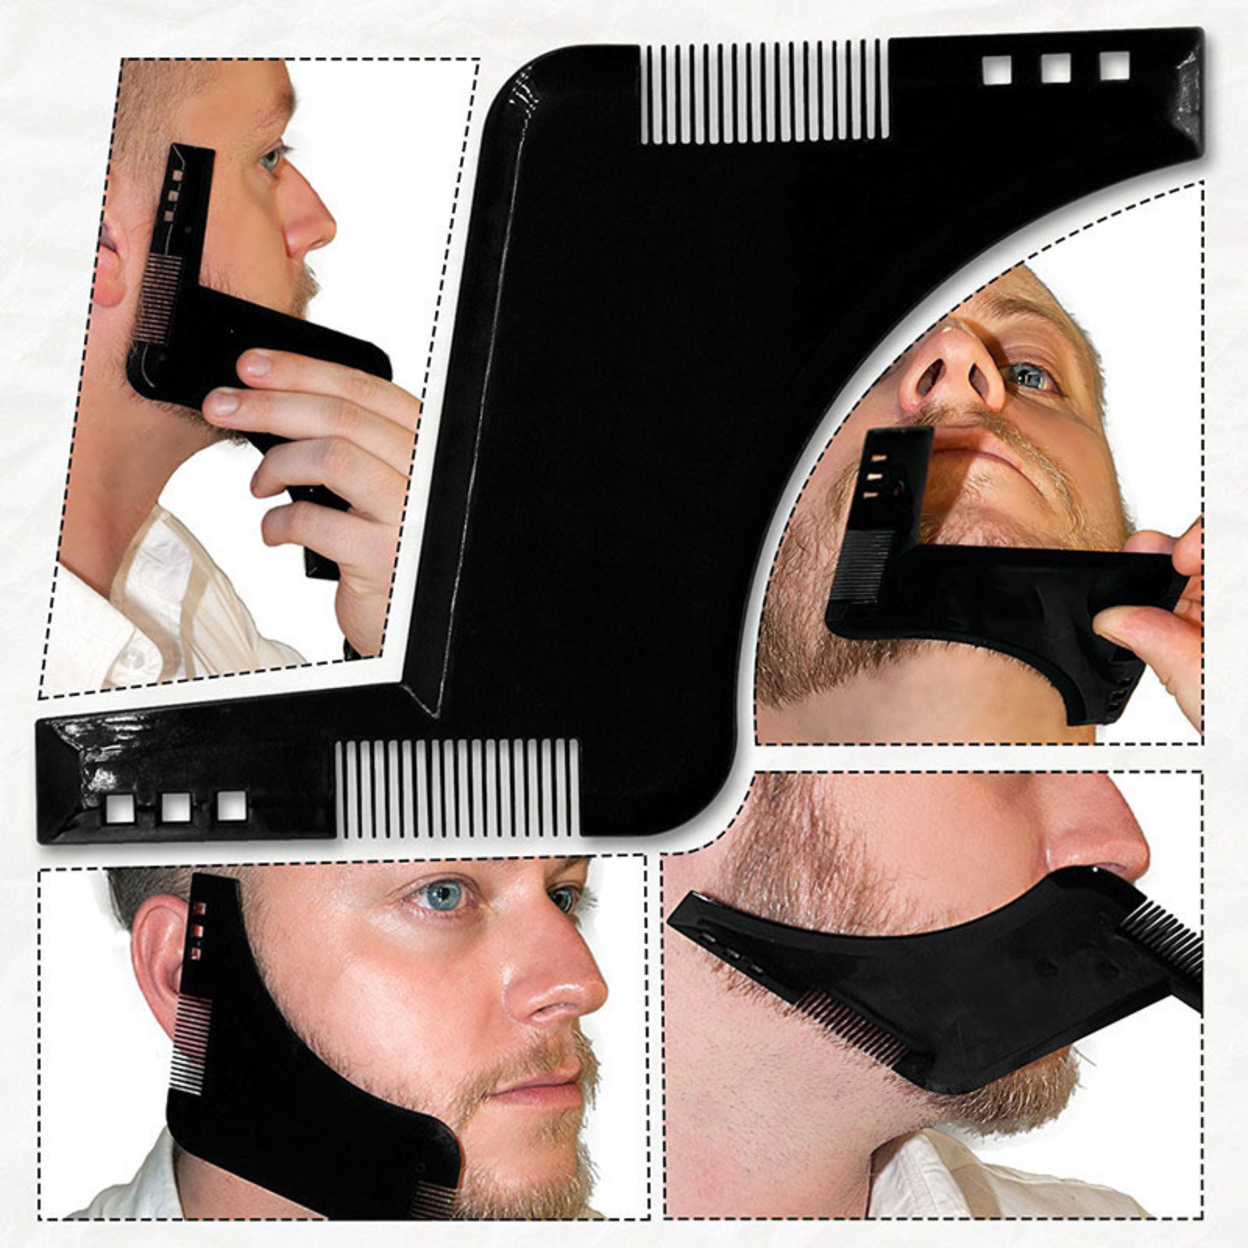 Styling Comb Shaping Tool Mustache Face For Men Gifts Black 59c4be36e2246139b279483c